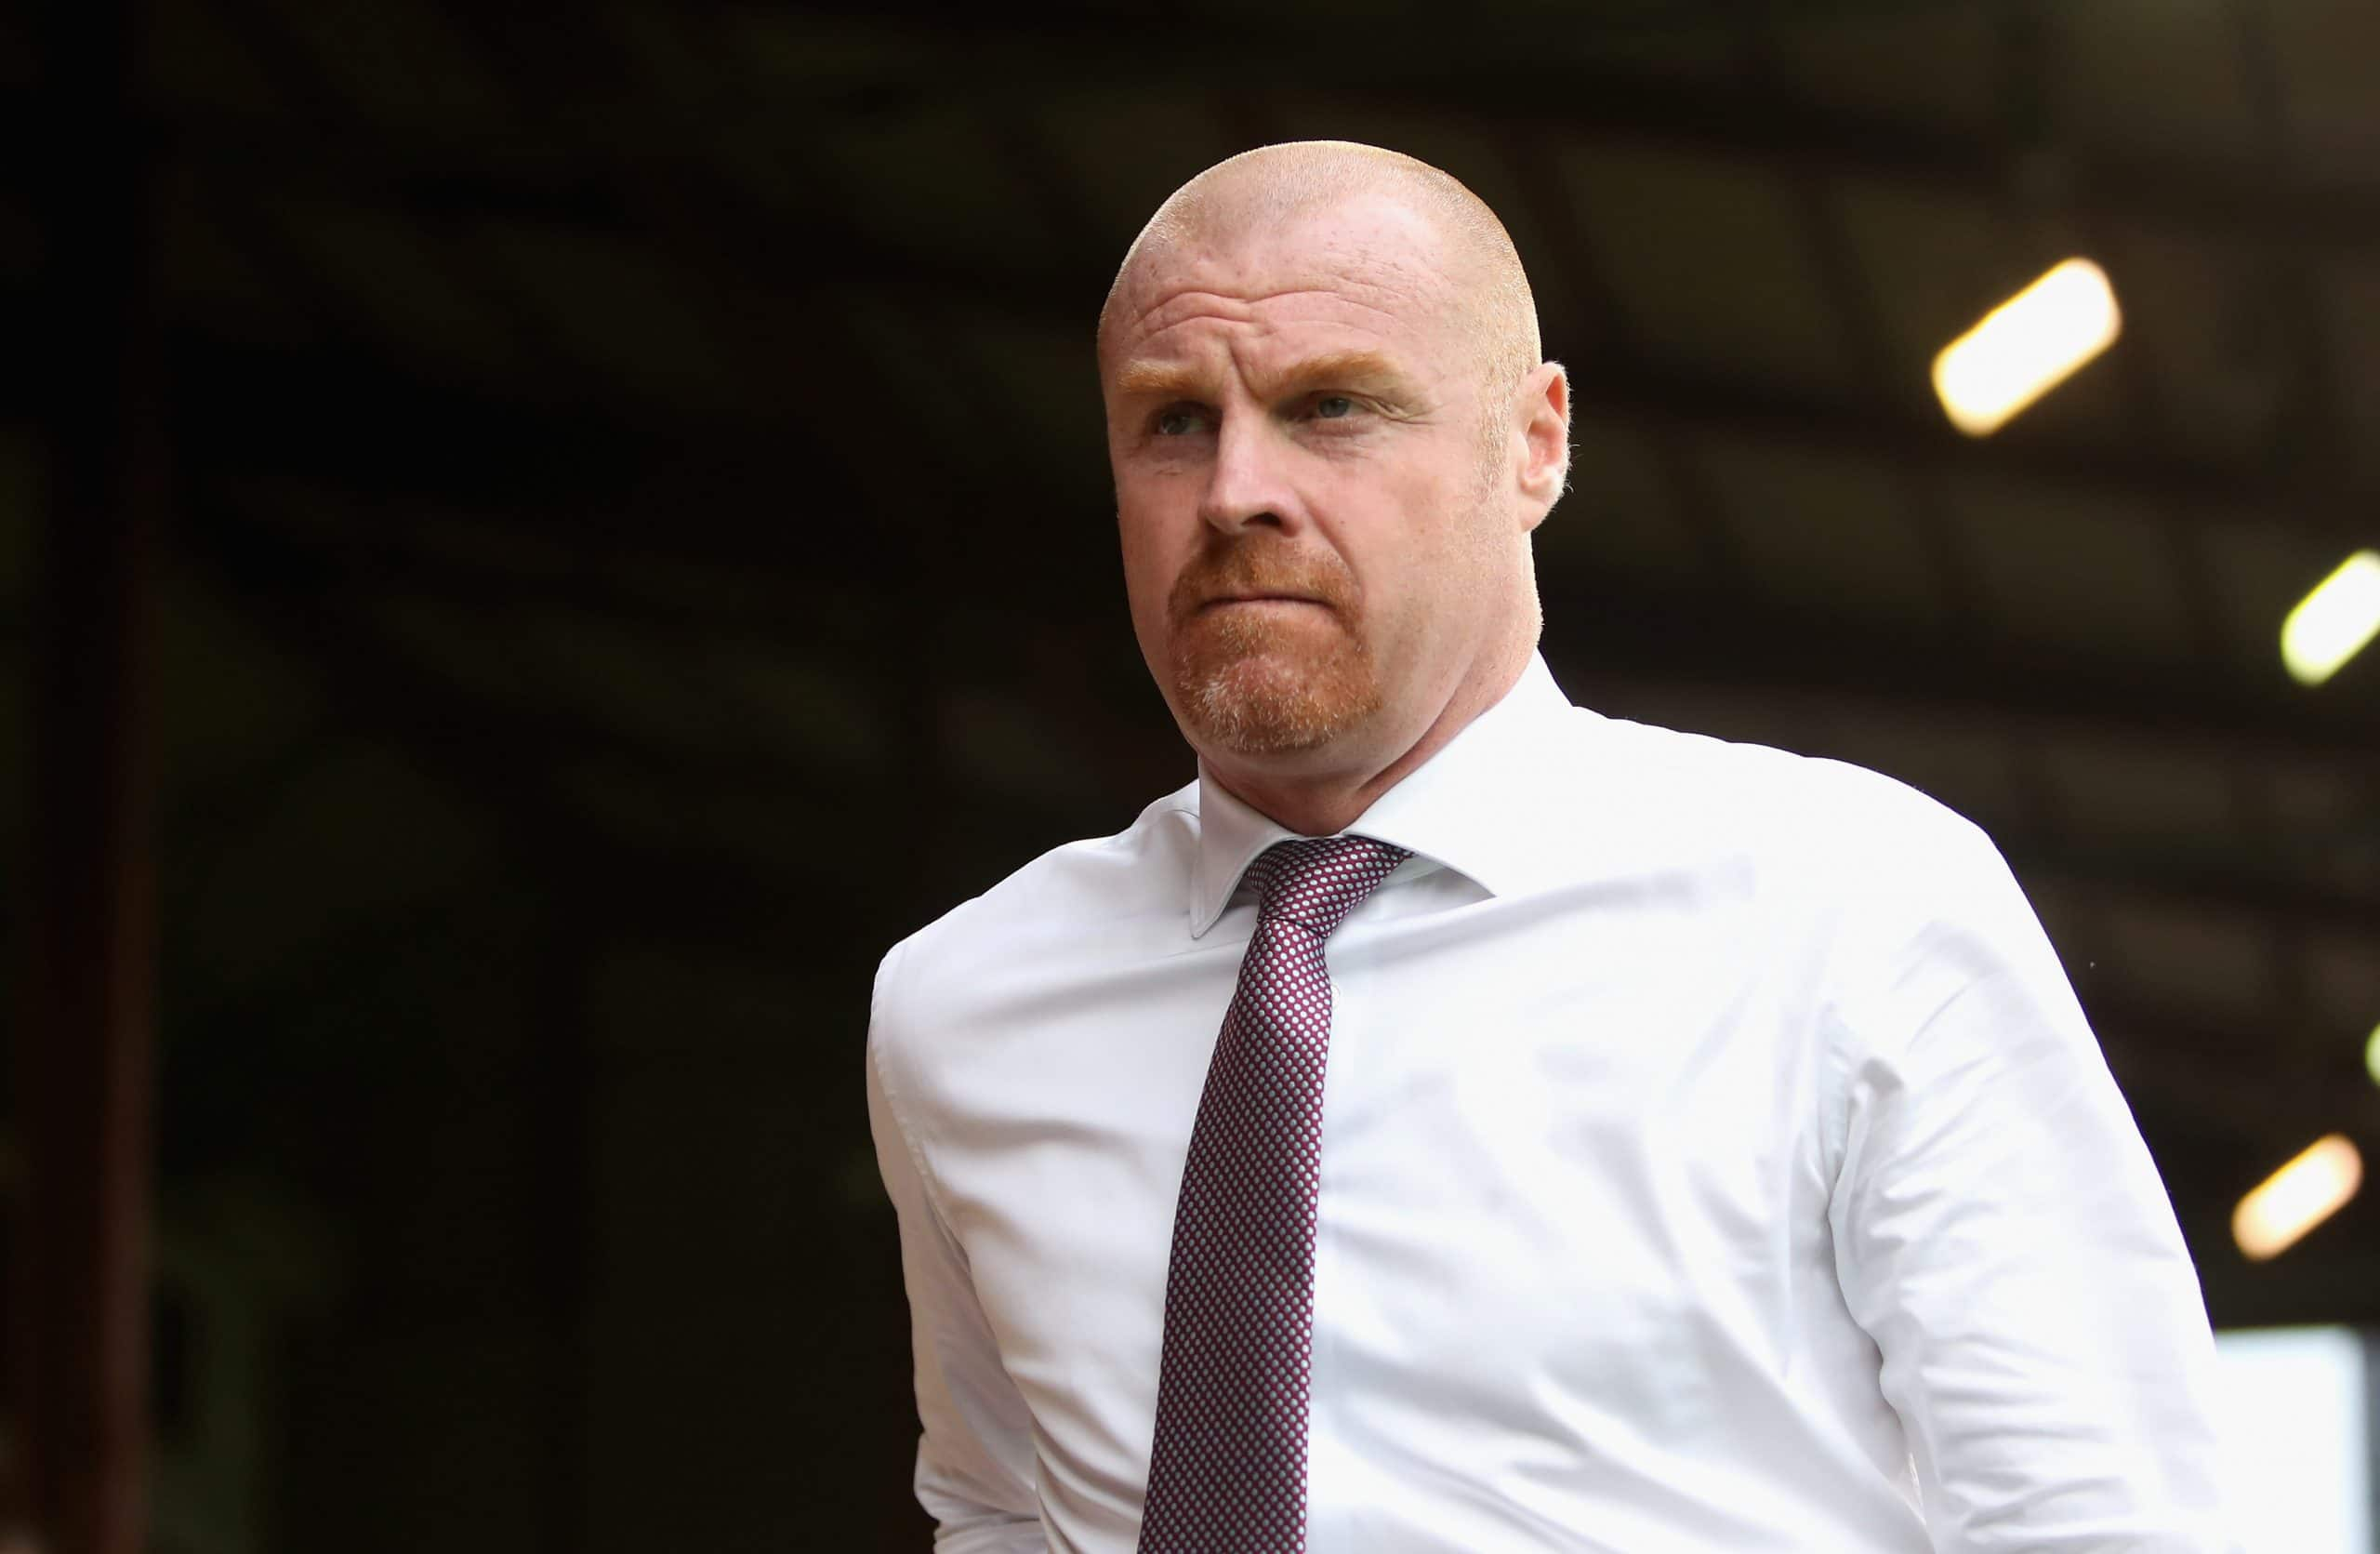 Sean Dyche knows this could be a huge season for his Lancashire side